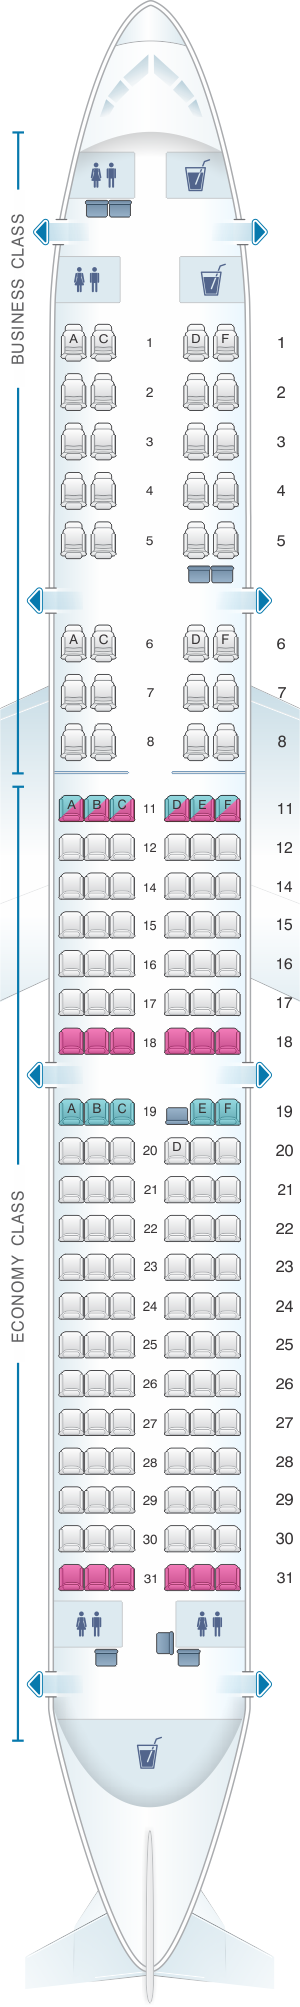 Seat map for Kingfisher Airlines Airbus A321 200 151PAX